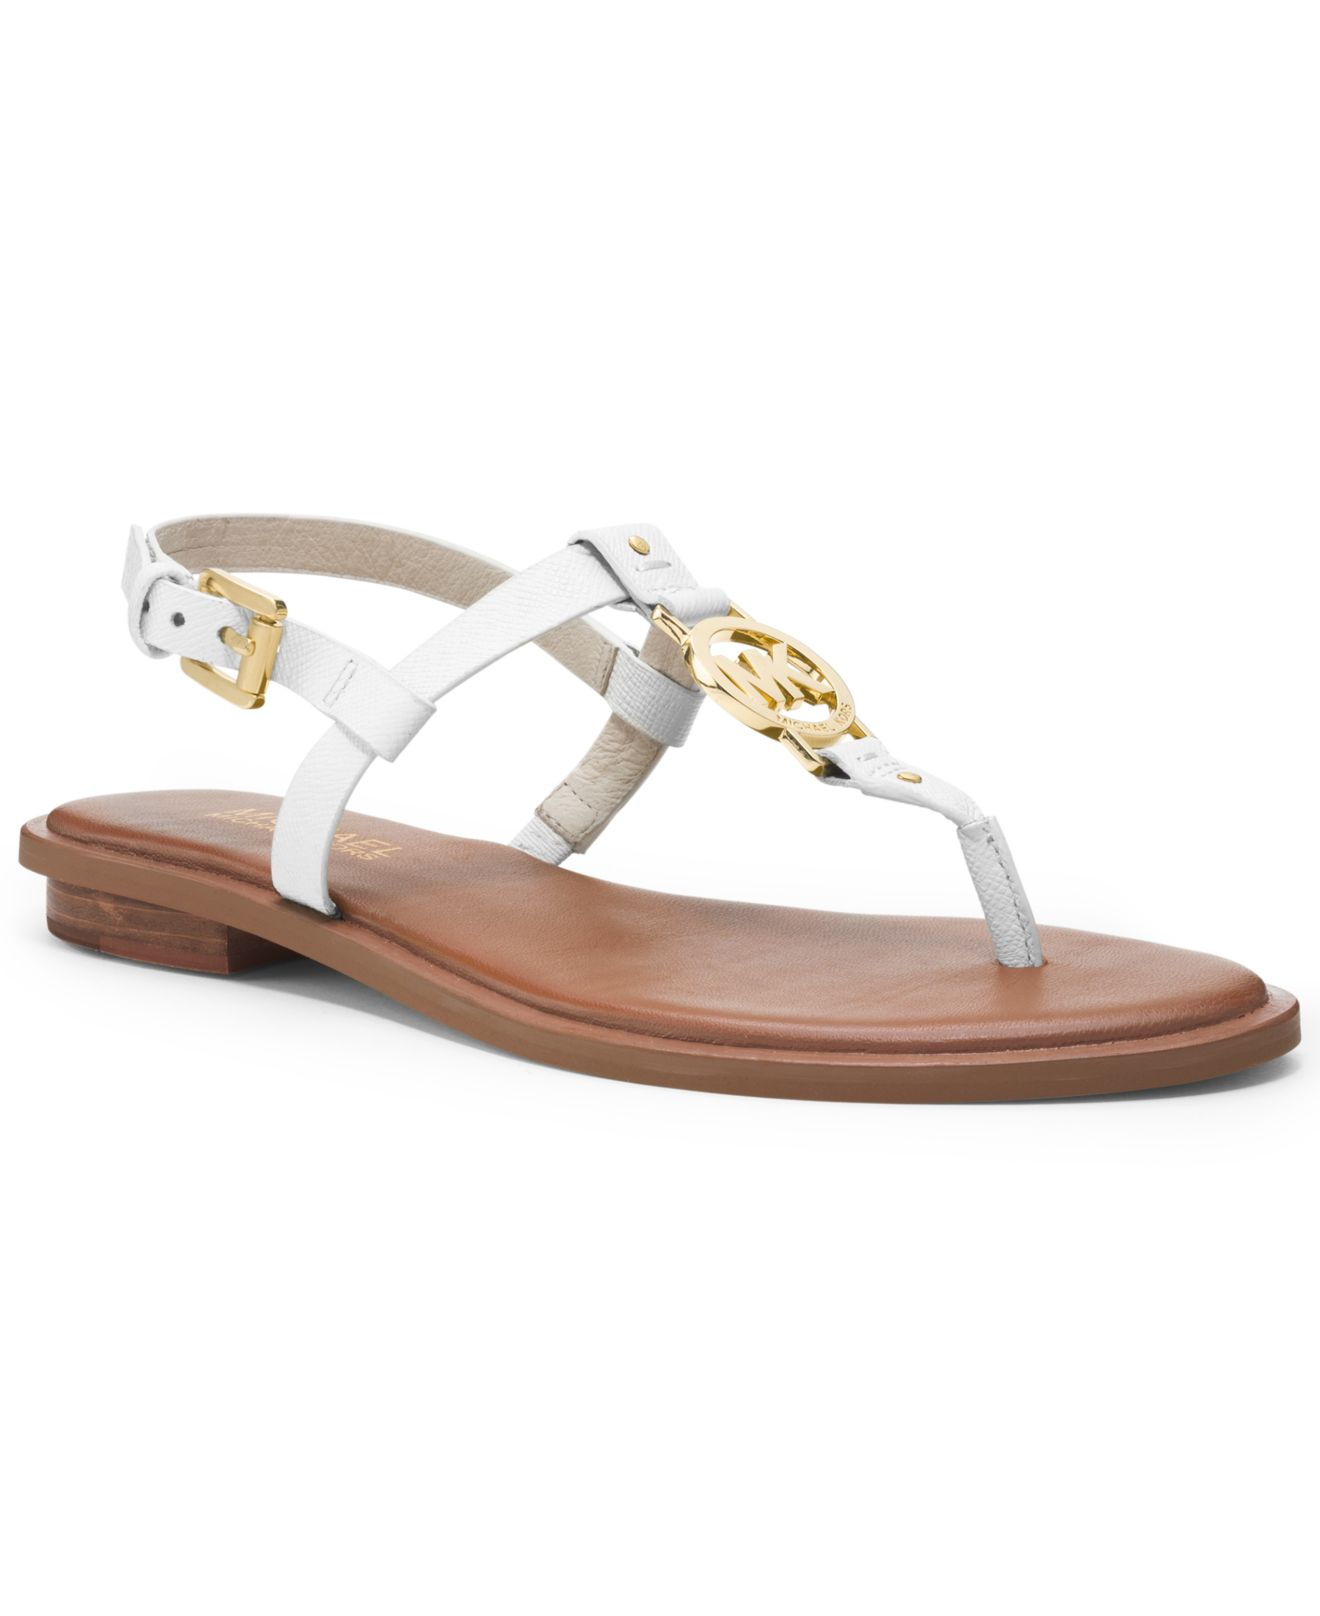 Lyst - Michael Kors Michael Sondra Thong Sandals in White